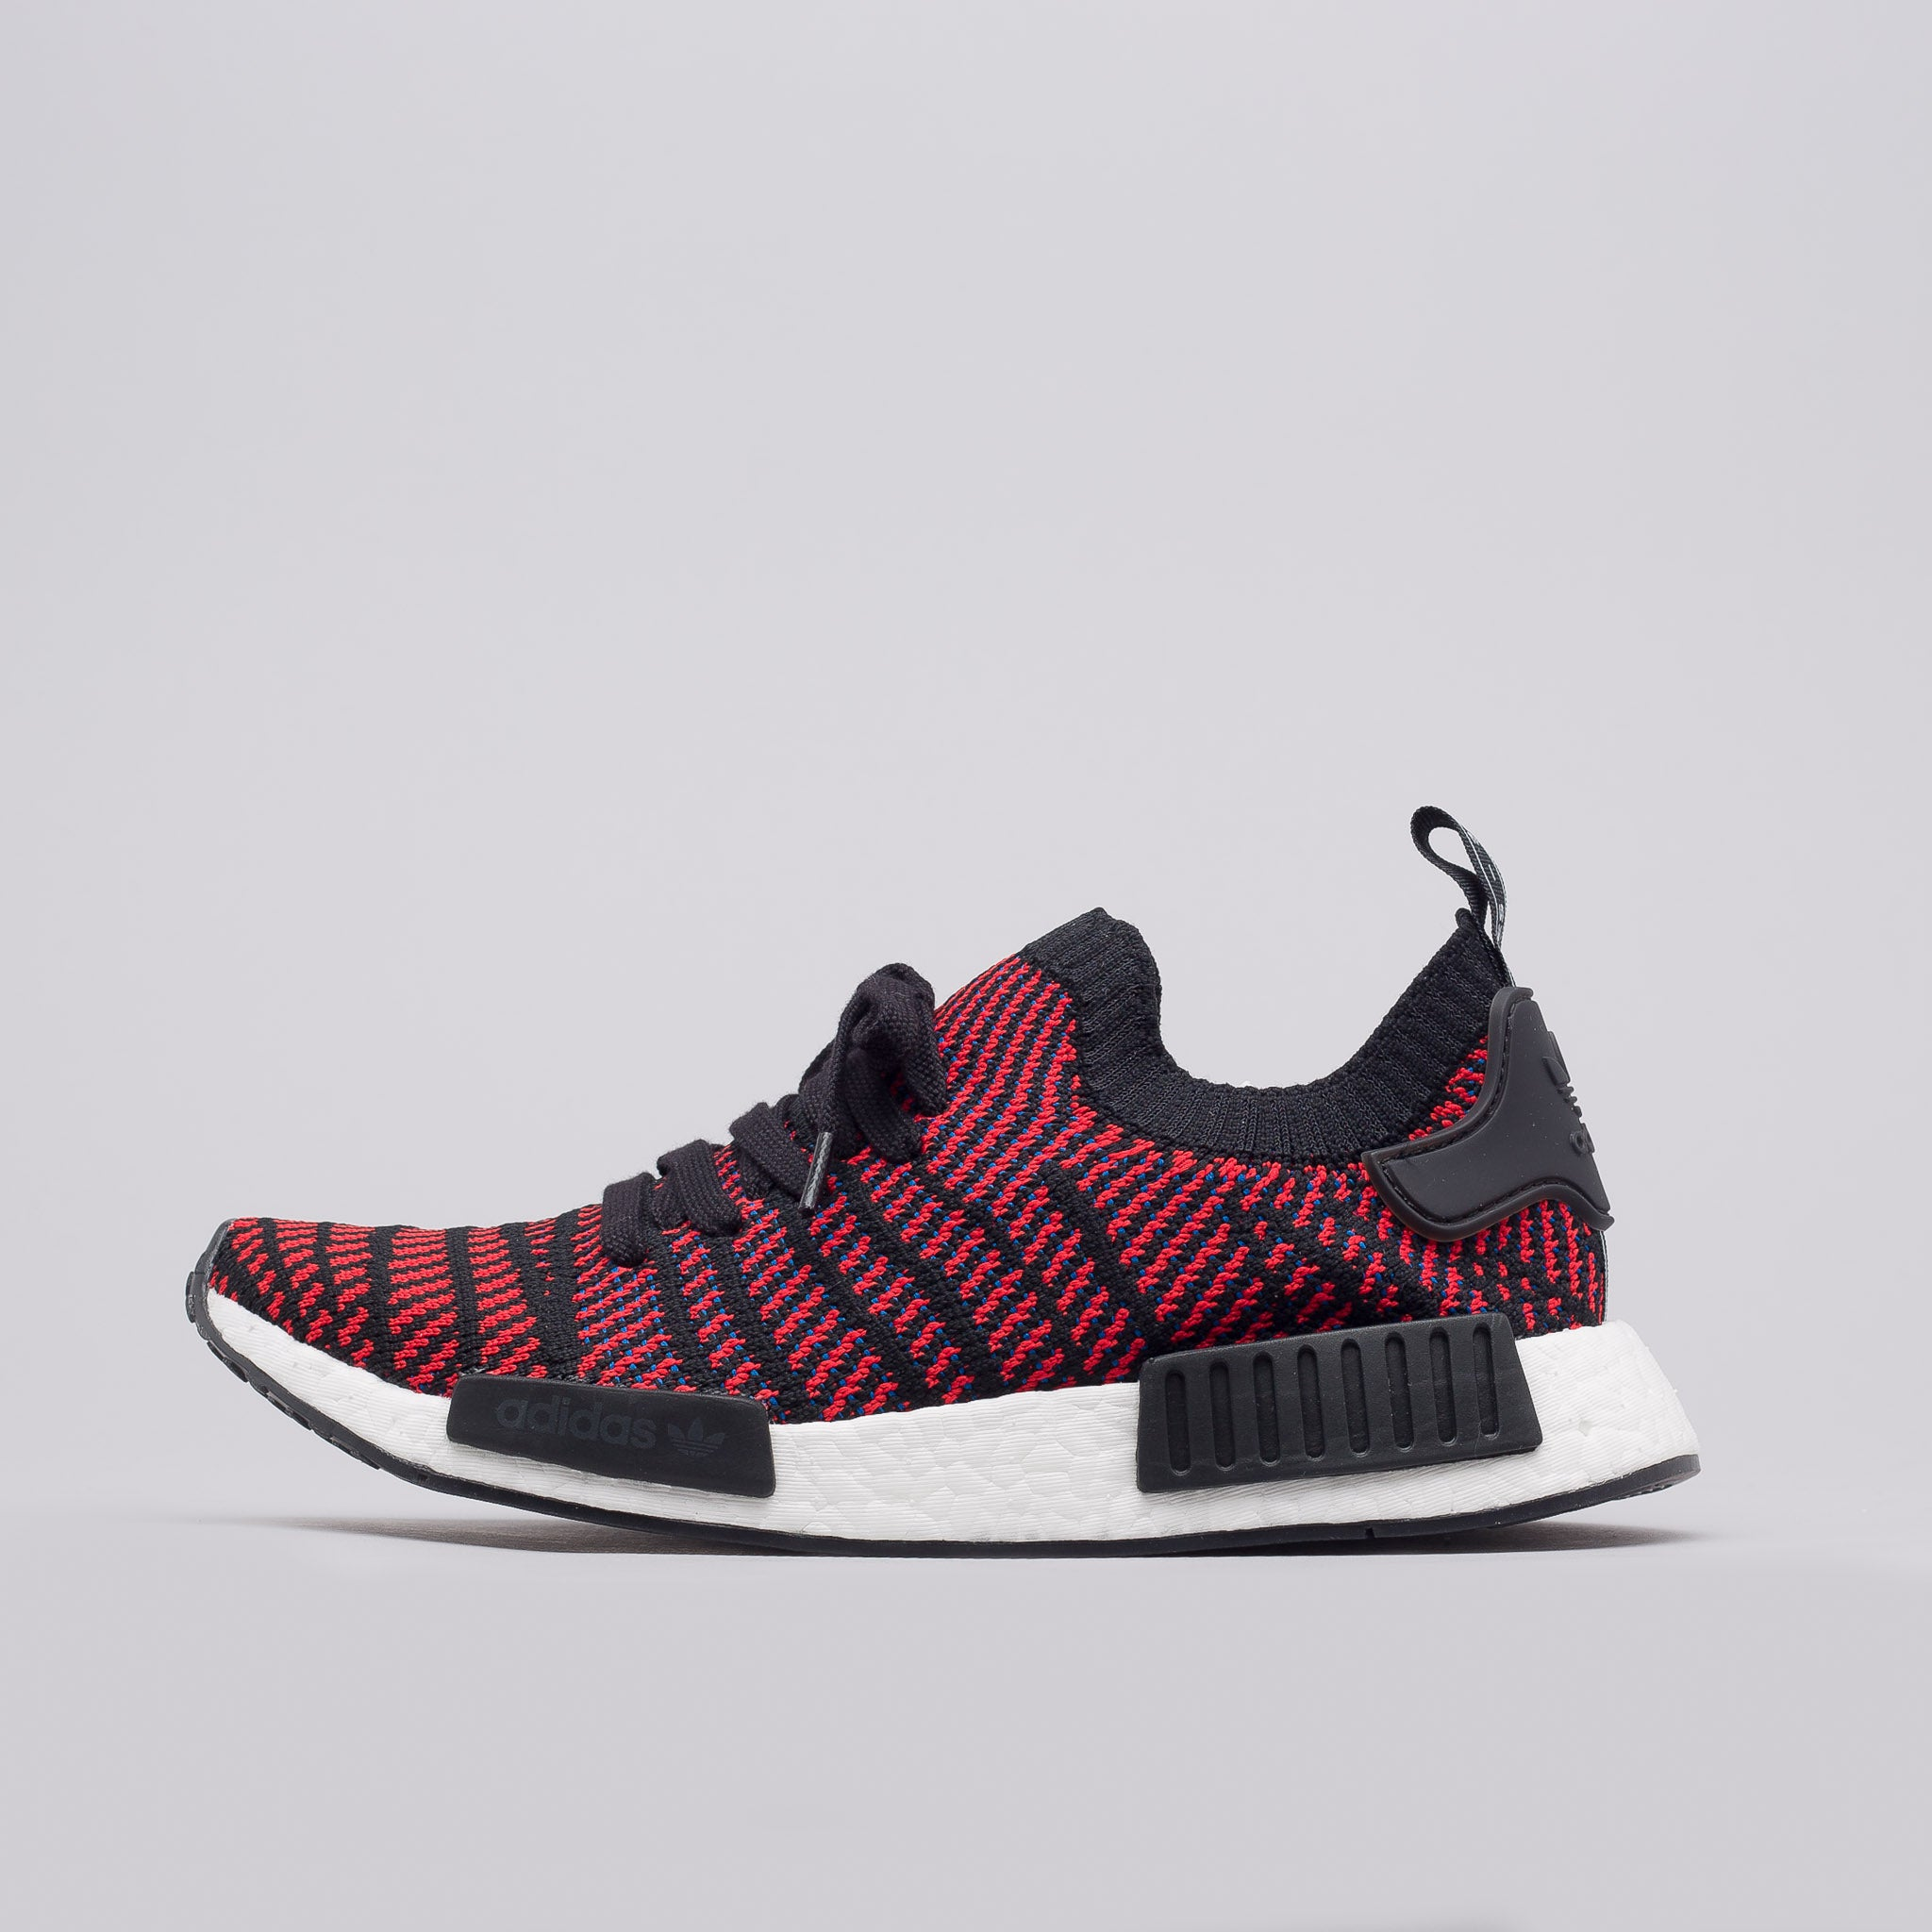 Adidas NMD R1 Runner Black Peach Salmon White s75234 Adidas